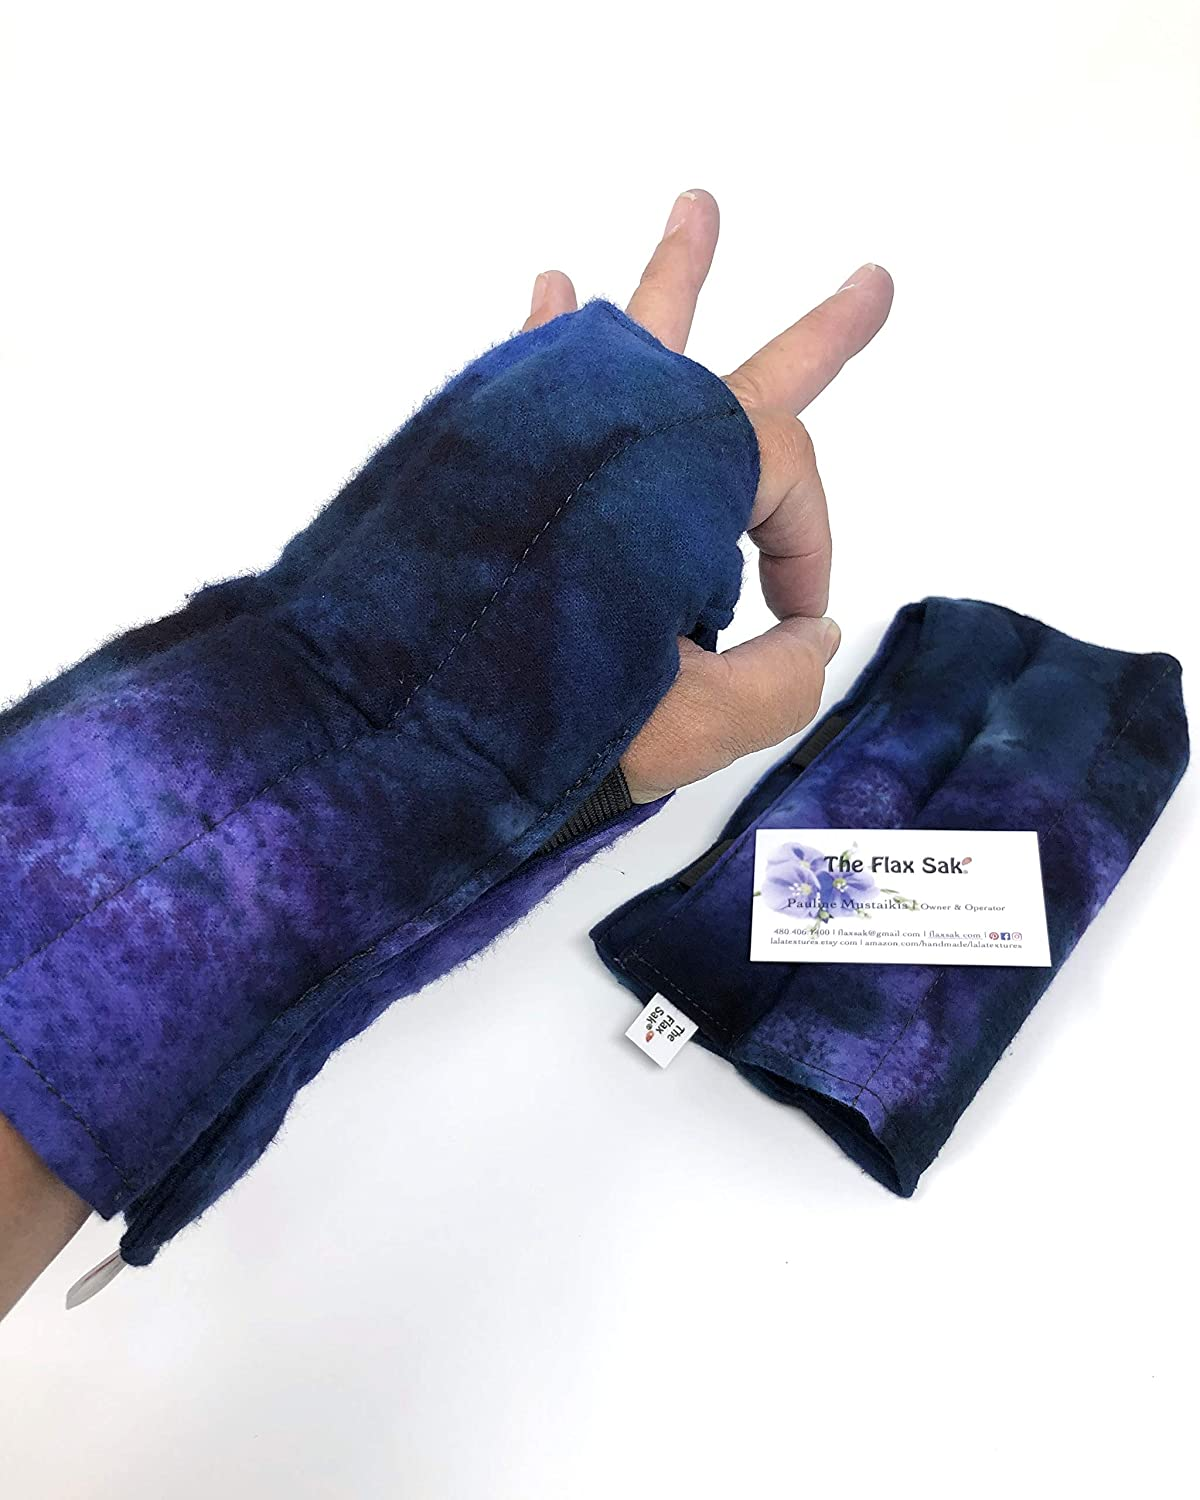 Wrist Arthritis Relief Present   Carpel Pain Glove   Heating Pad for Hands and Wrists   Blue